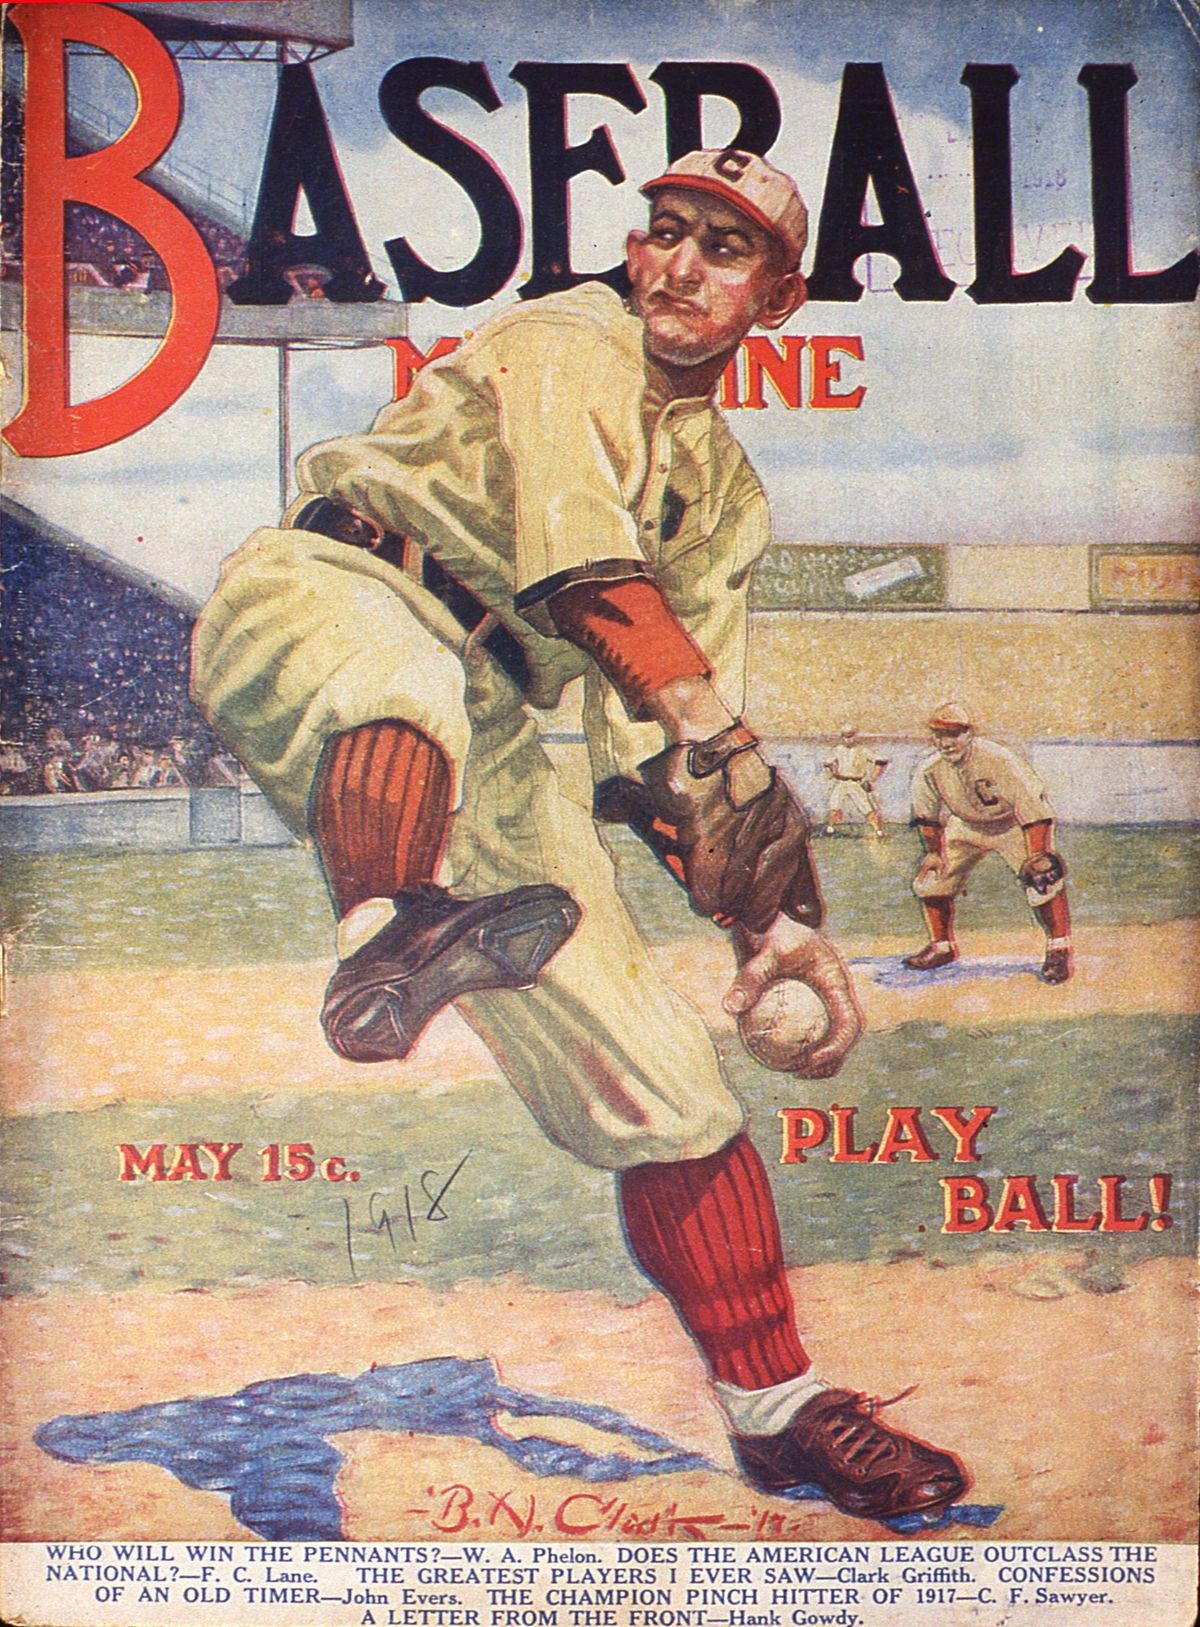 Baseball Magazine Cover With A Pitcher In Action